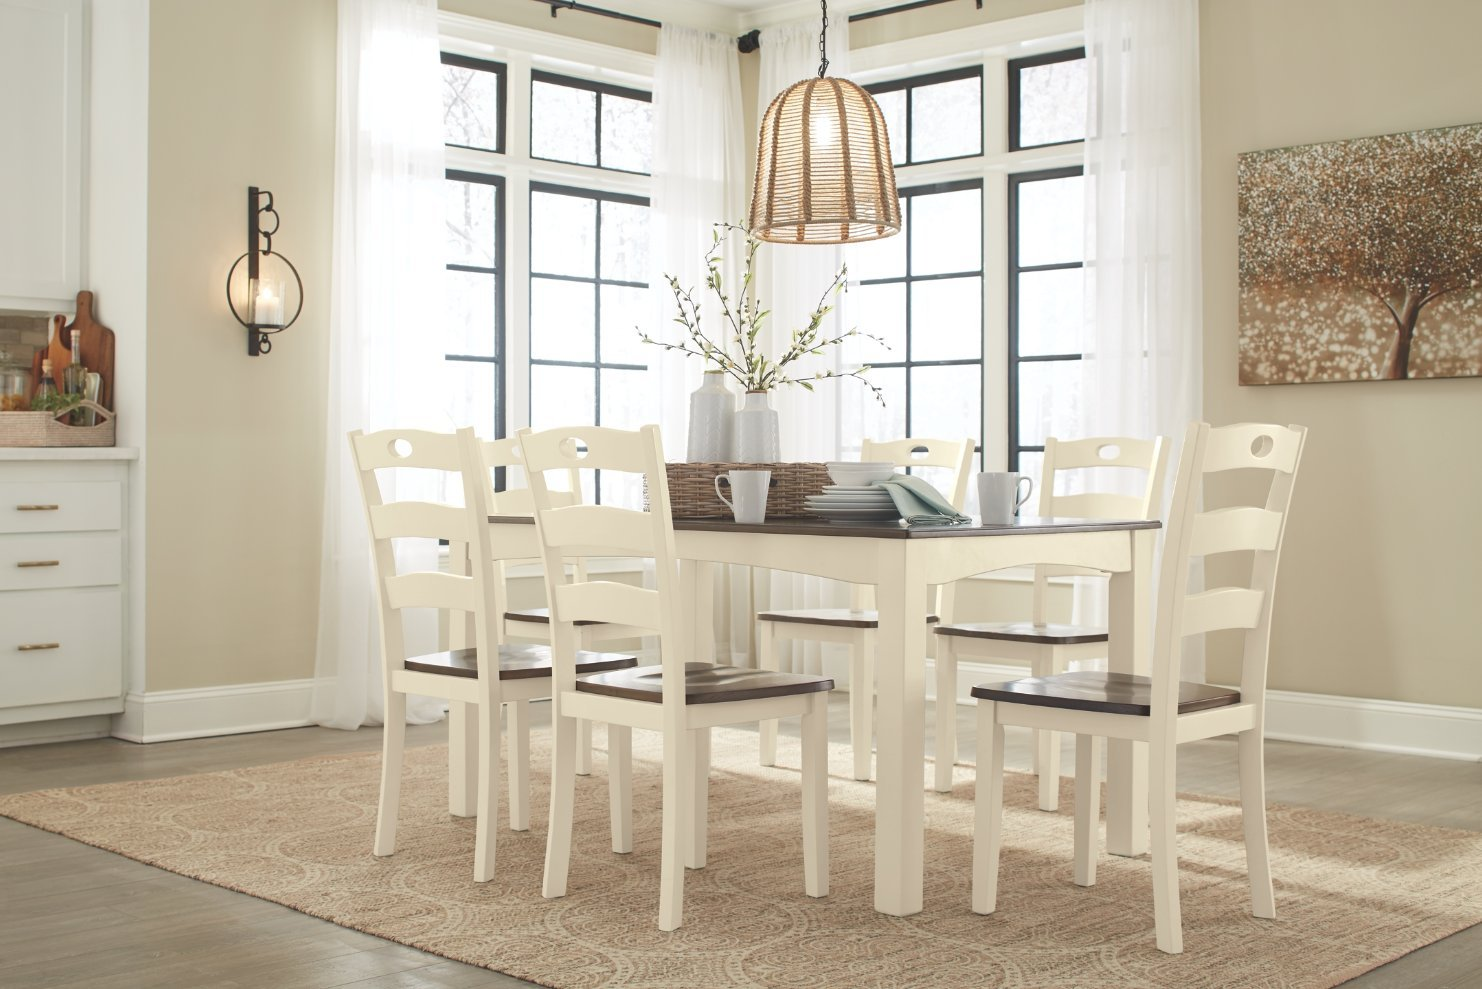 Amazon.com   Ashley Furniture Signature Design   Woodanville Dining Room  Table Set   Set Of 7   Dining Table And 6 Chairs   Casual   Cream/Brown  Finish ...